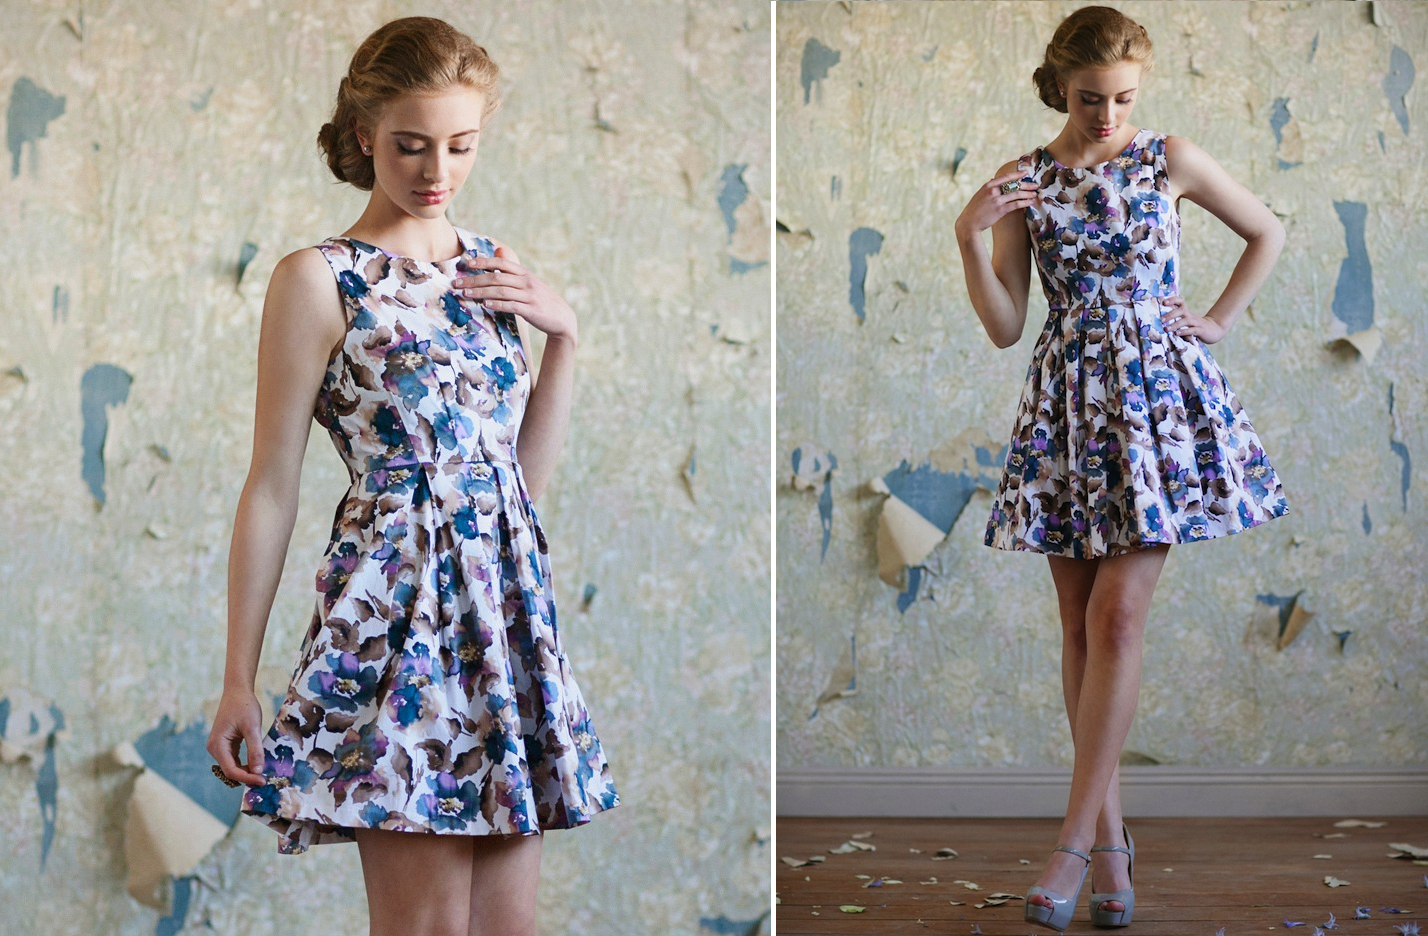 Ruche-bridesmaids-dresses-stylish-bridal-party-attire-floral-printed-blue-purple-white.original